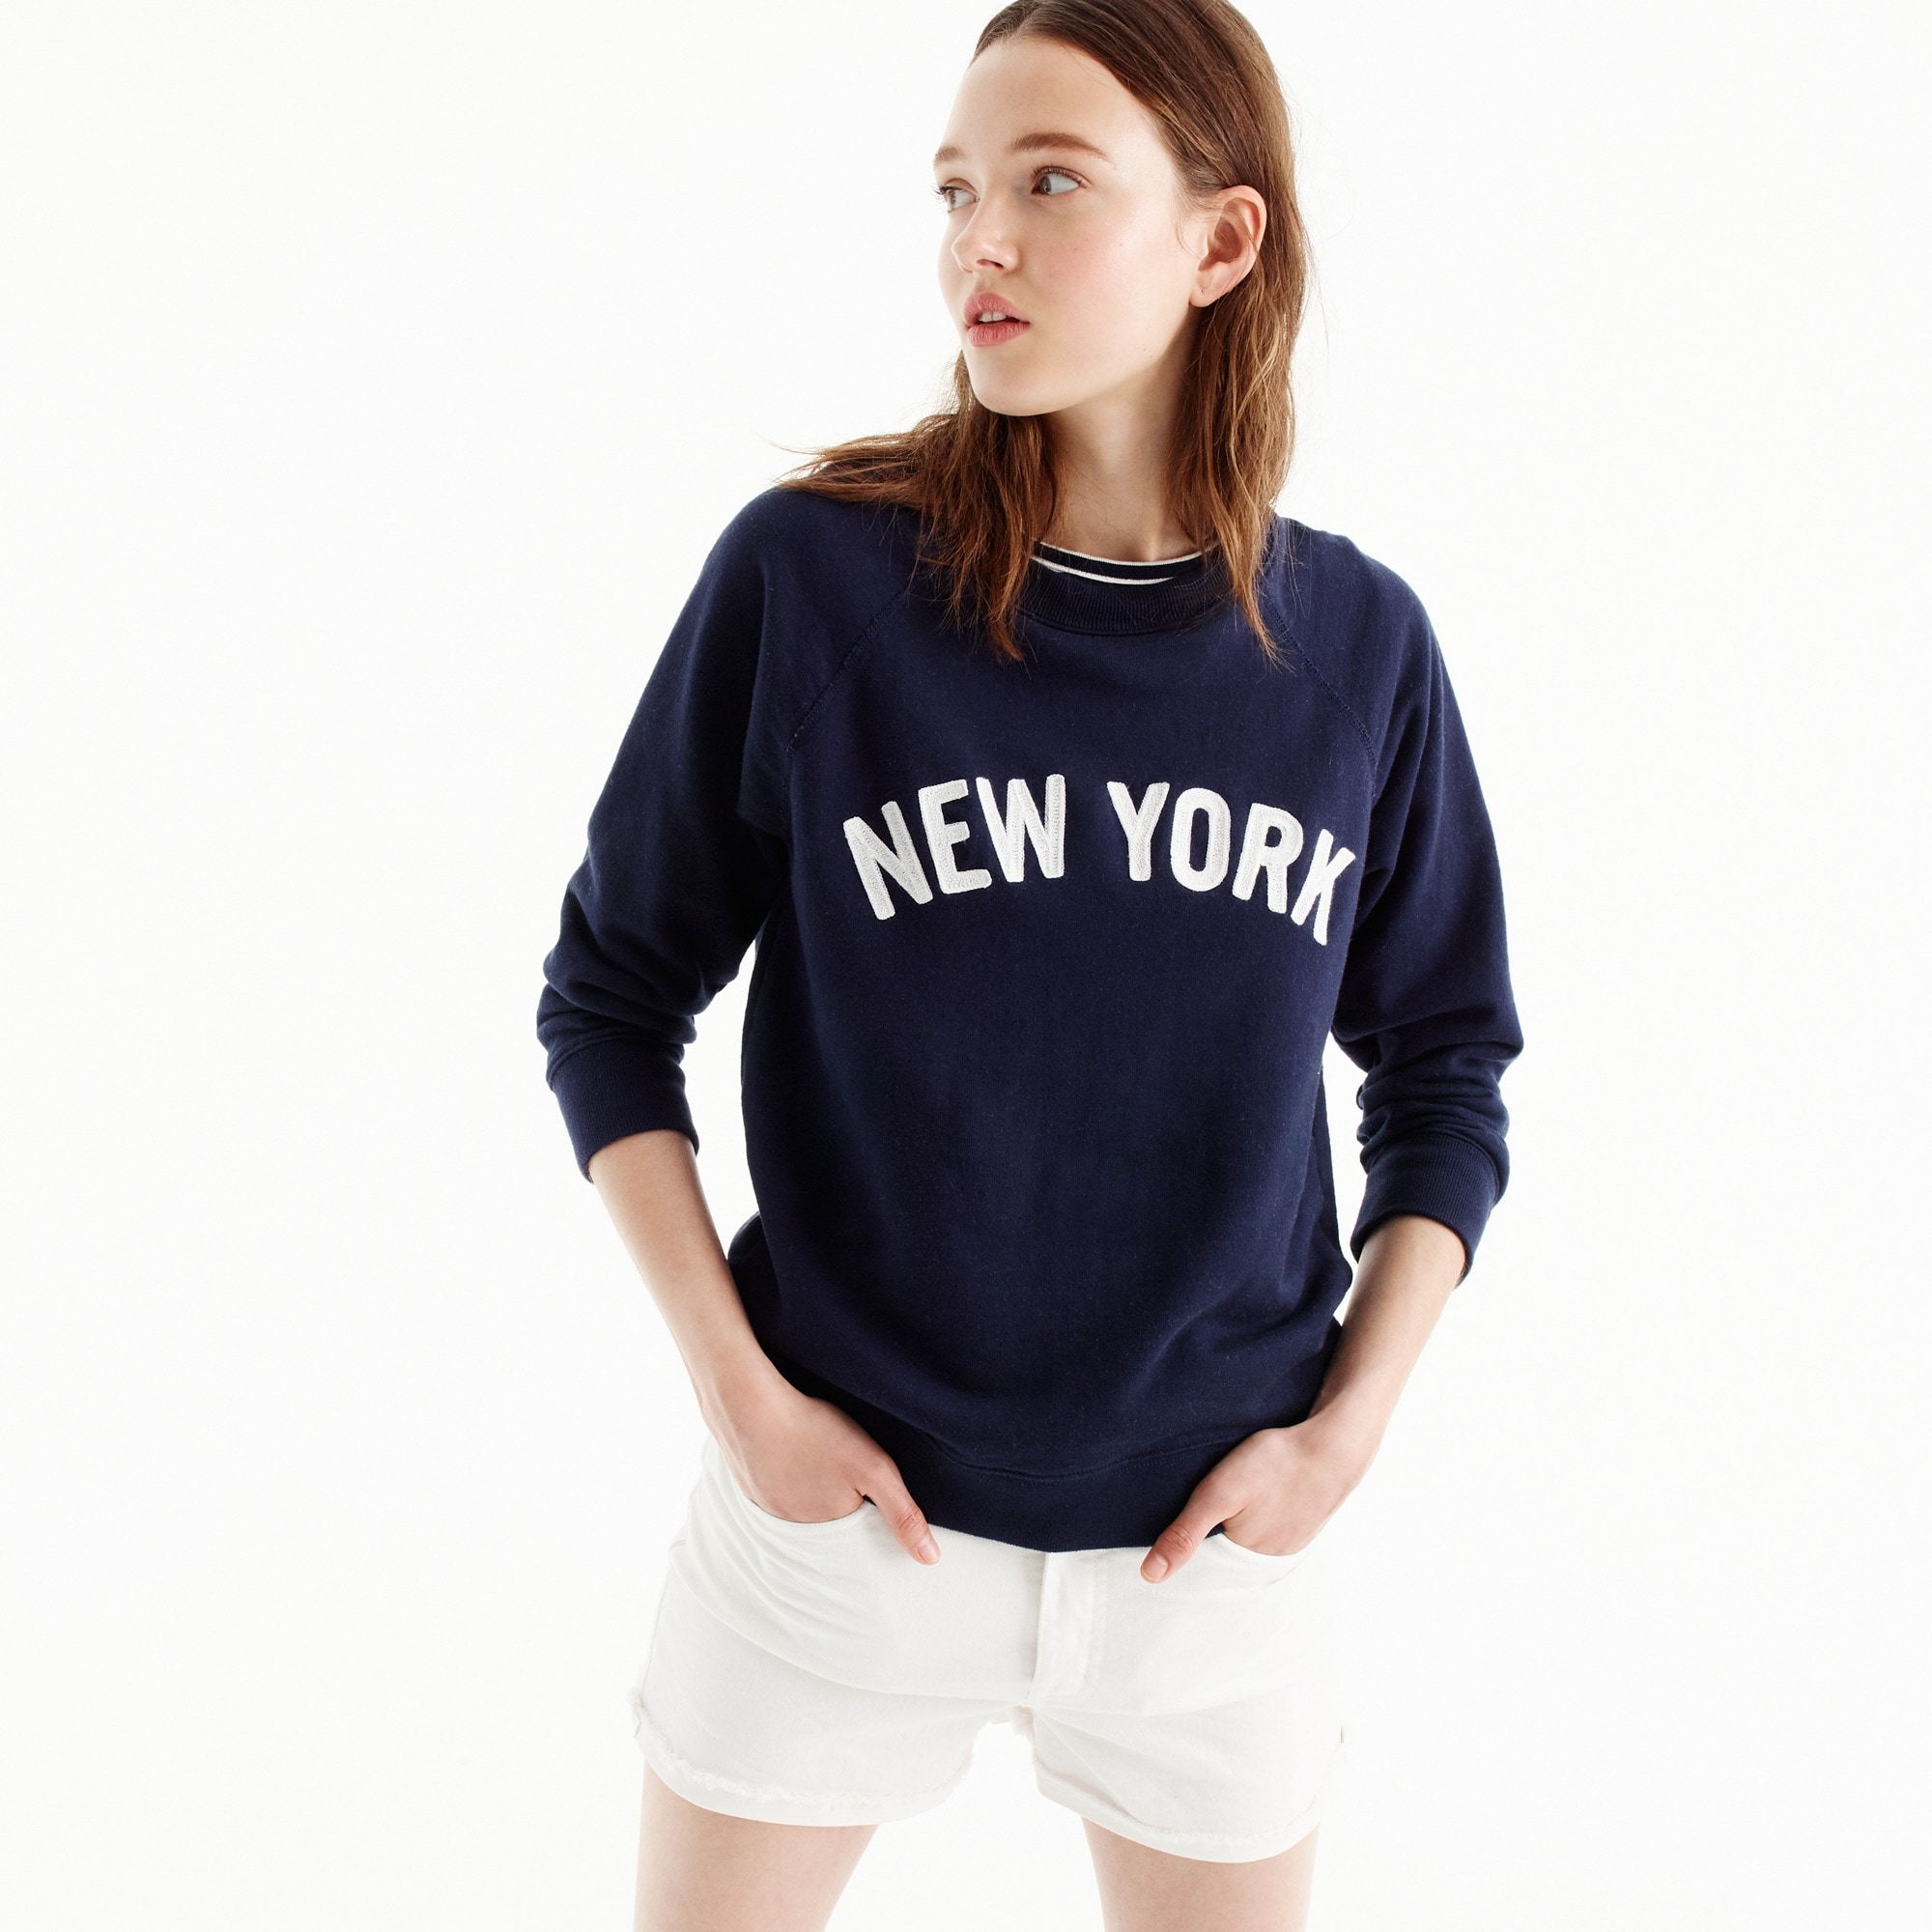 womens New York sweatshirt